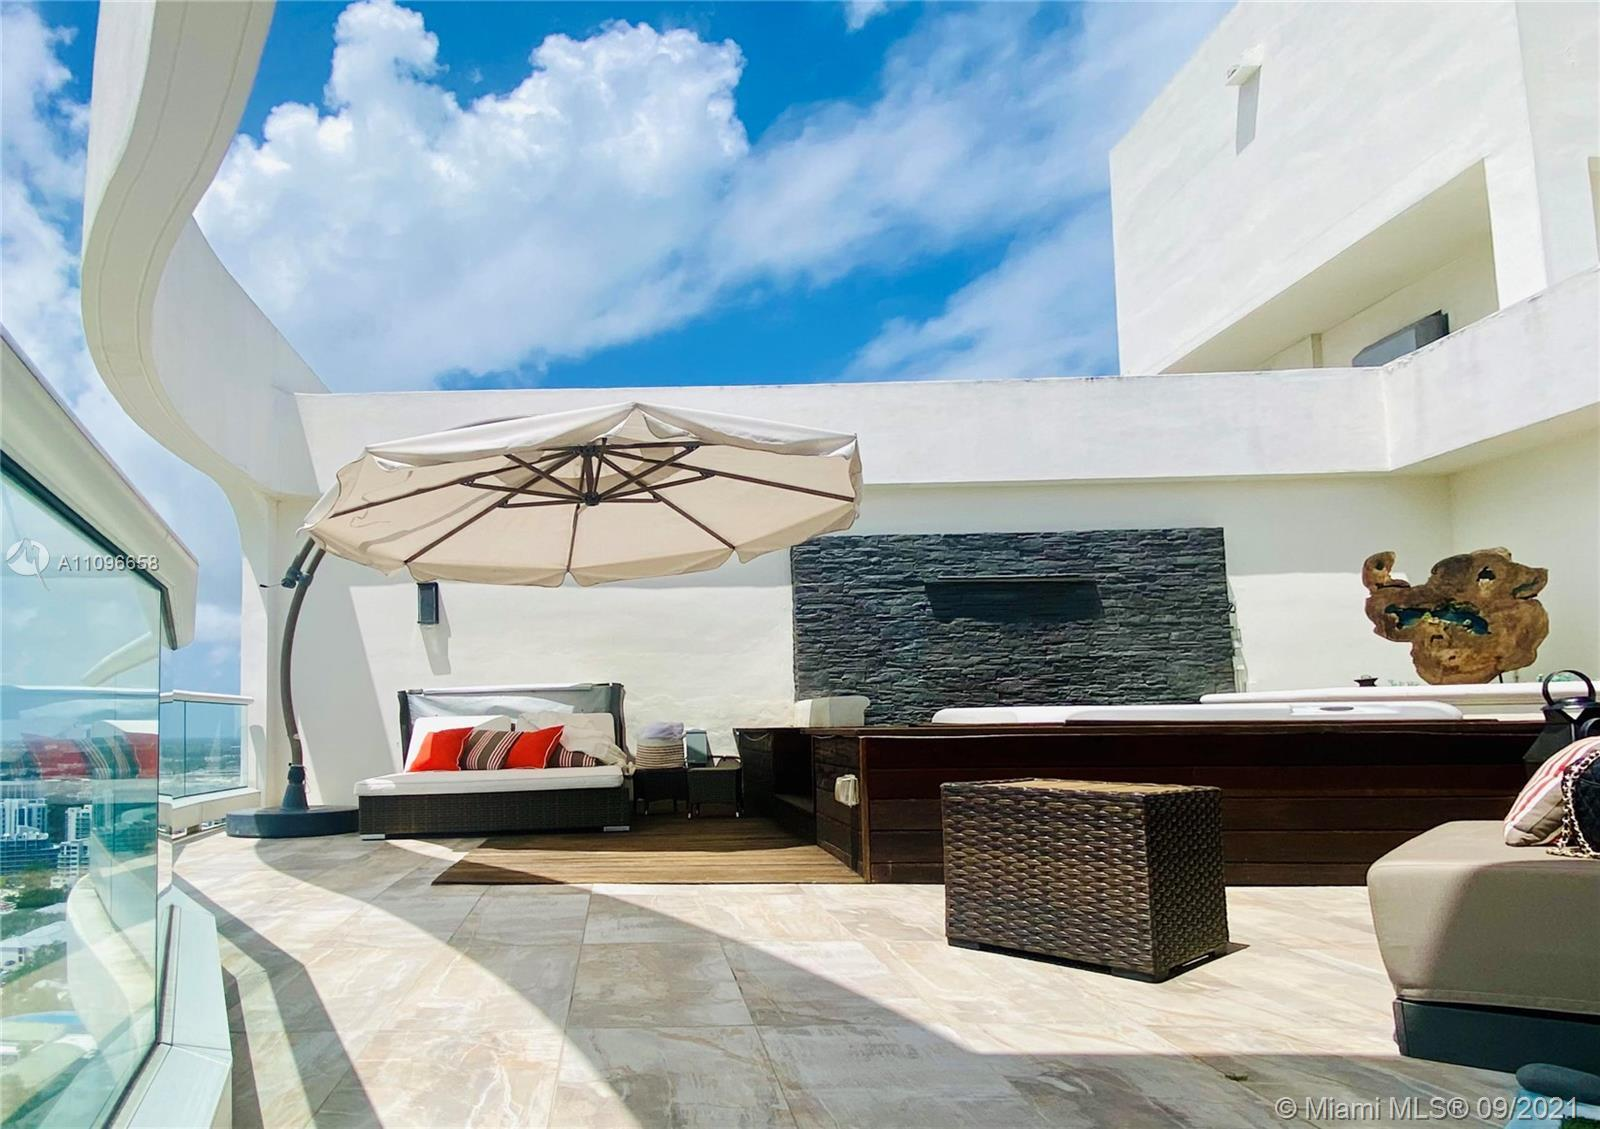 GORGEOUS 2 STORY PENTHOUSE WITH BREATHTAKING VIEWS, LARGE TERRACE W PRIVATE JACUZZI, BEAUTIFULLY UPG